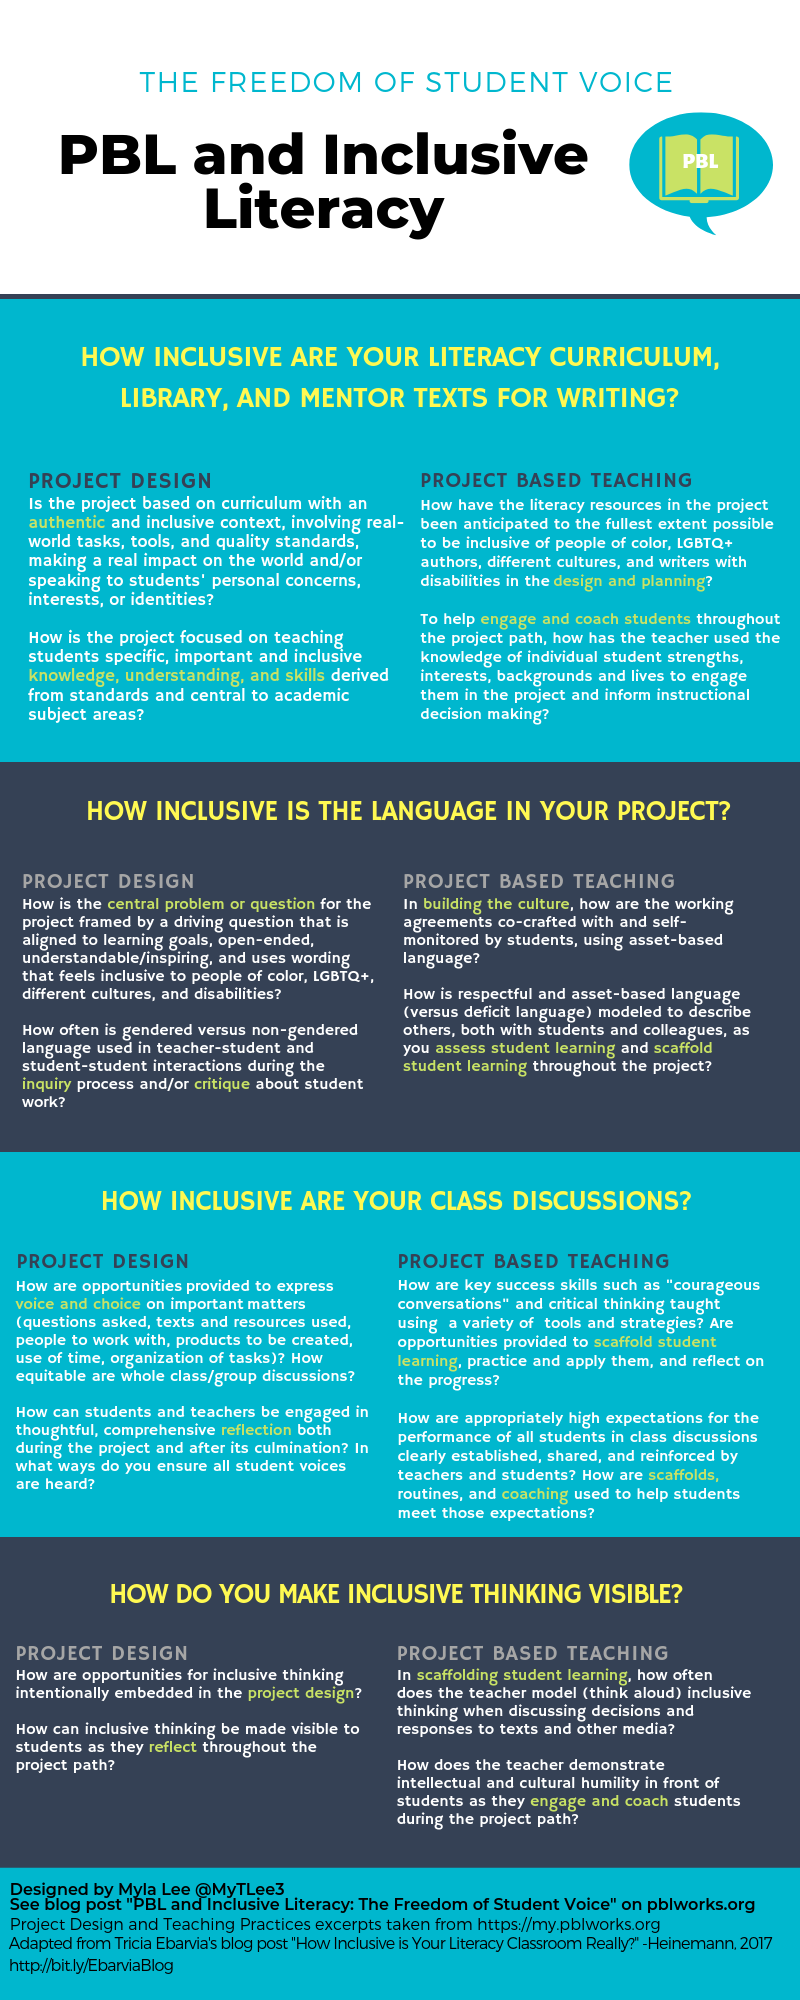 PBL and Inclusive Literacy